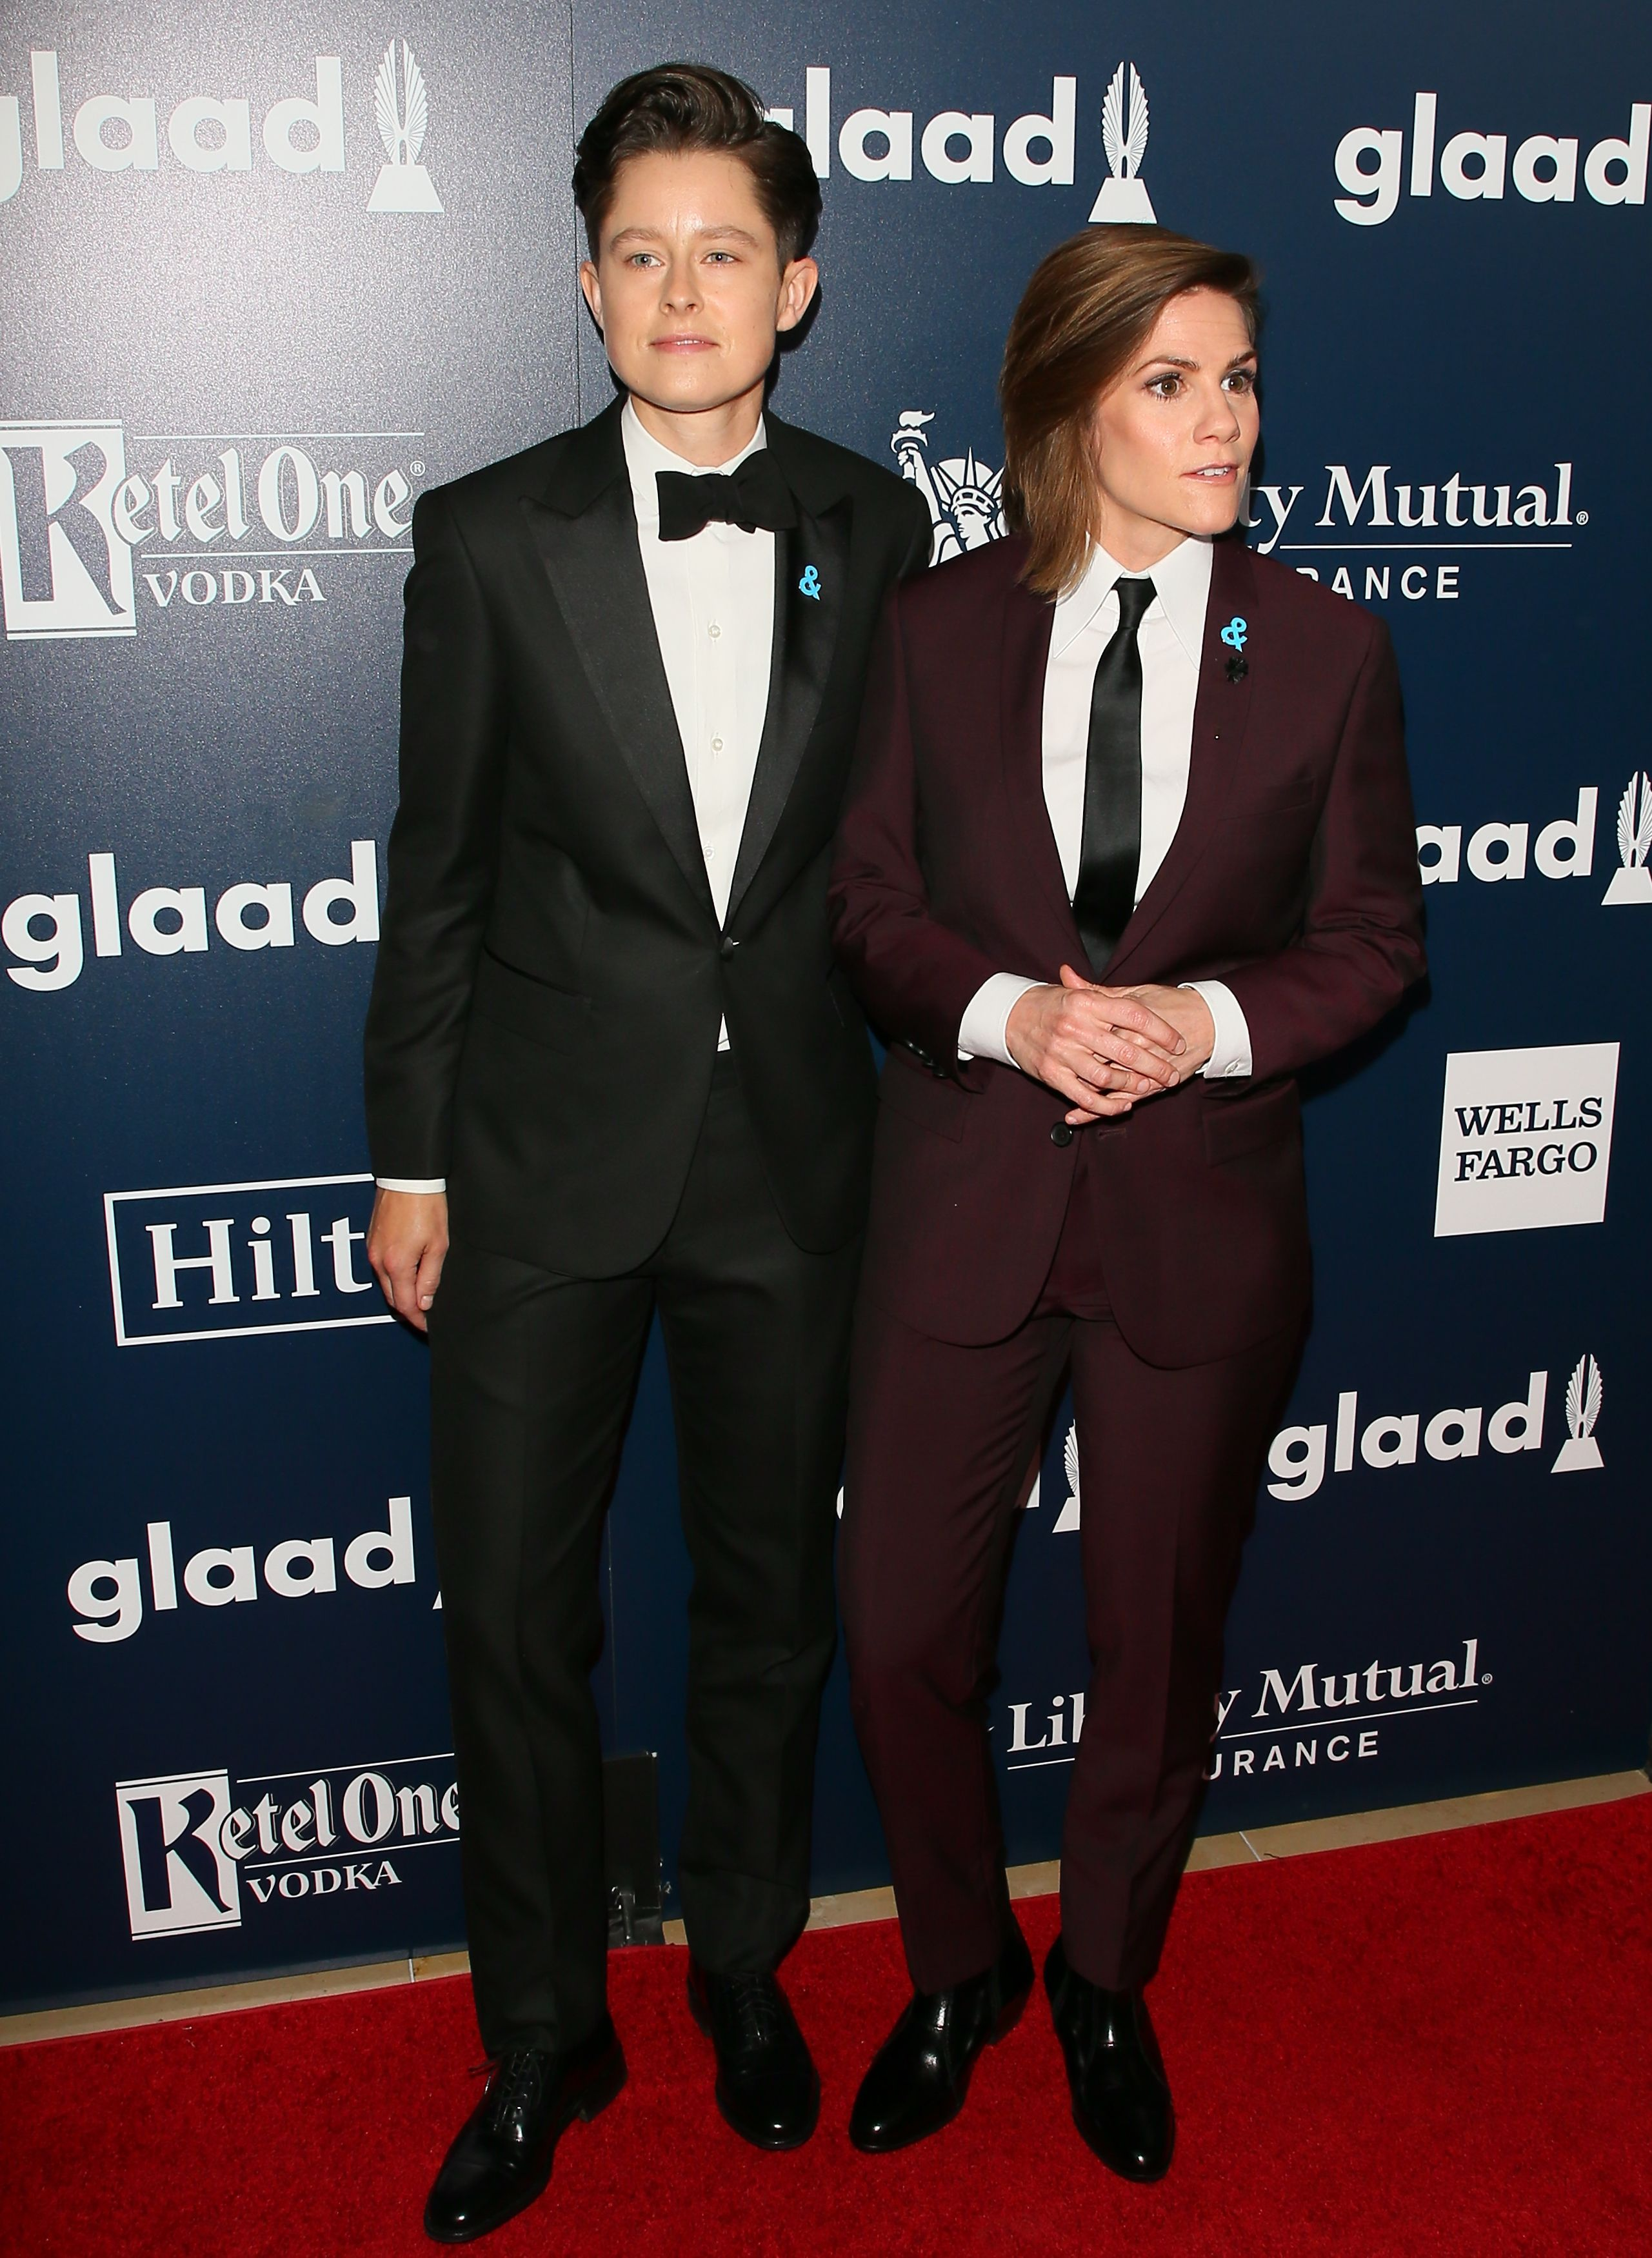 Cameron Esposito and Rhea Butcher attend the 28th Annual GLAAD Media Awards on April 01, 2017 in Beverly Hills, California.